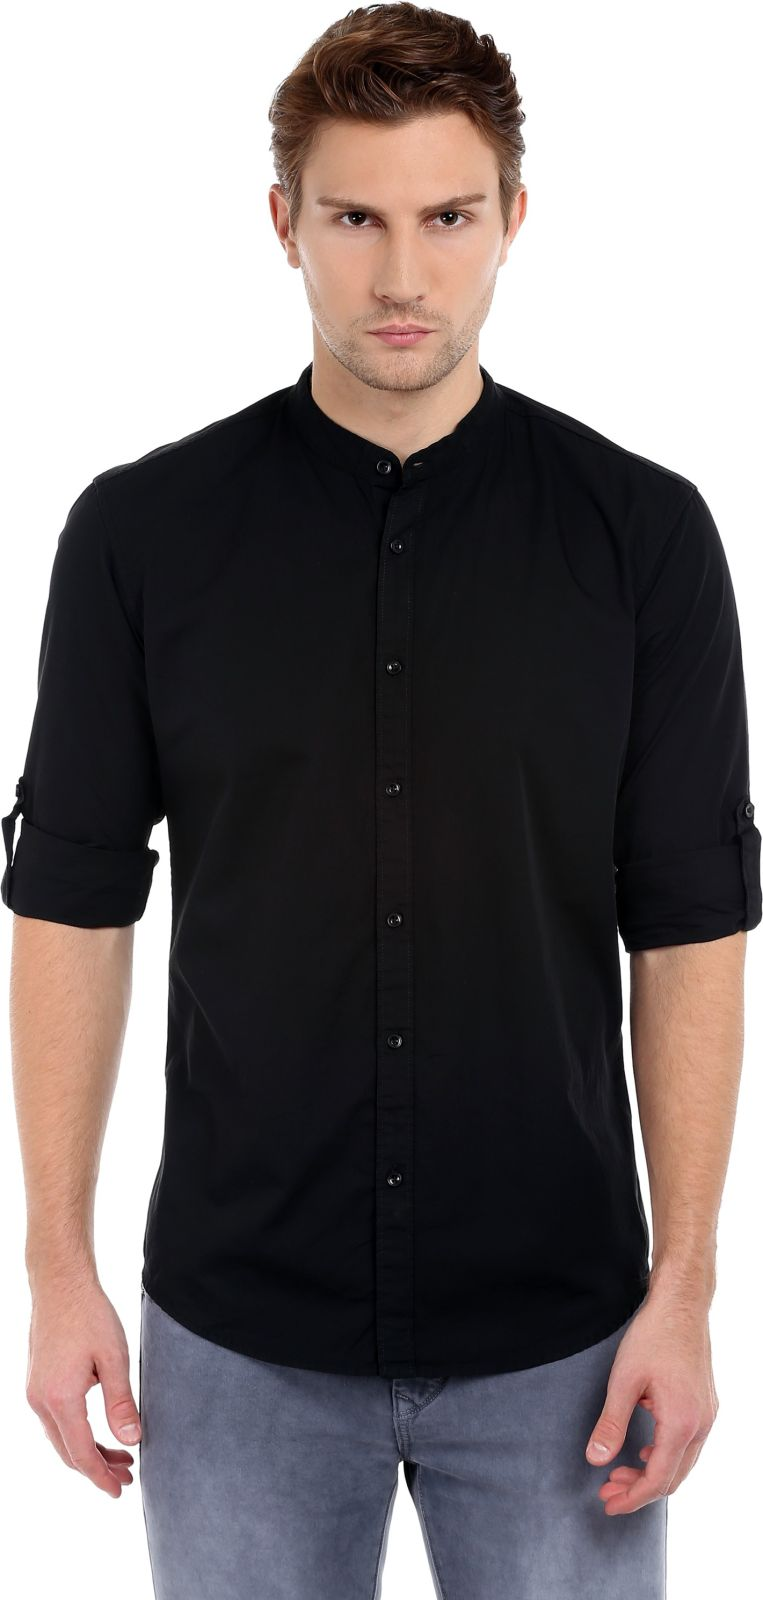 Dennis Lingo Mens Solid Casual Black Shirt